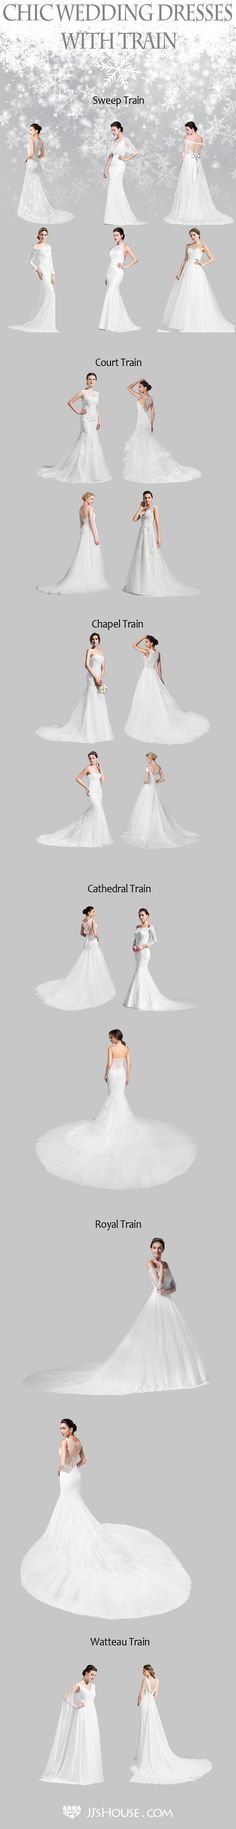 "CHIC Wedding Dresses With TRAIN! CHOOSE ONE NOW! <a class=""pintag searchlink"" data-query=""%23weddingdress"" data-type=""hashtag"" href=""/search/?q=%23weddingdress&rs=hashtag"" rel=""nofollow"" title=""#weddingdress search Pinterest"">#weddingdress</a>"